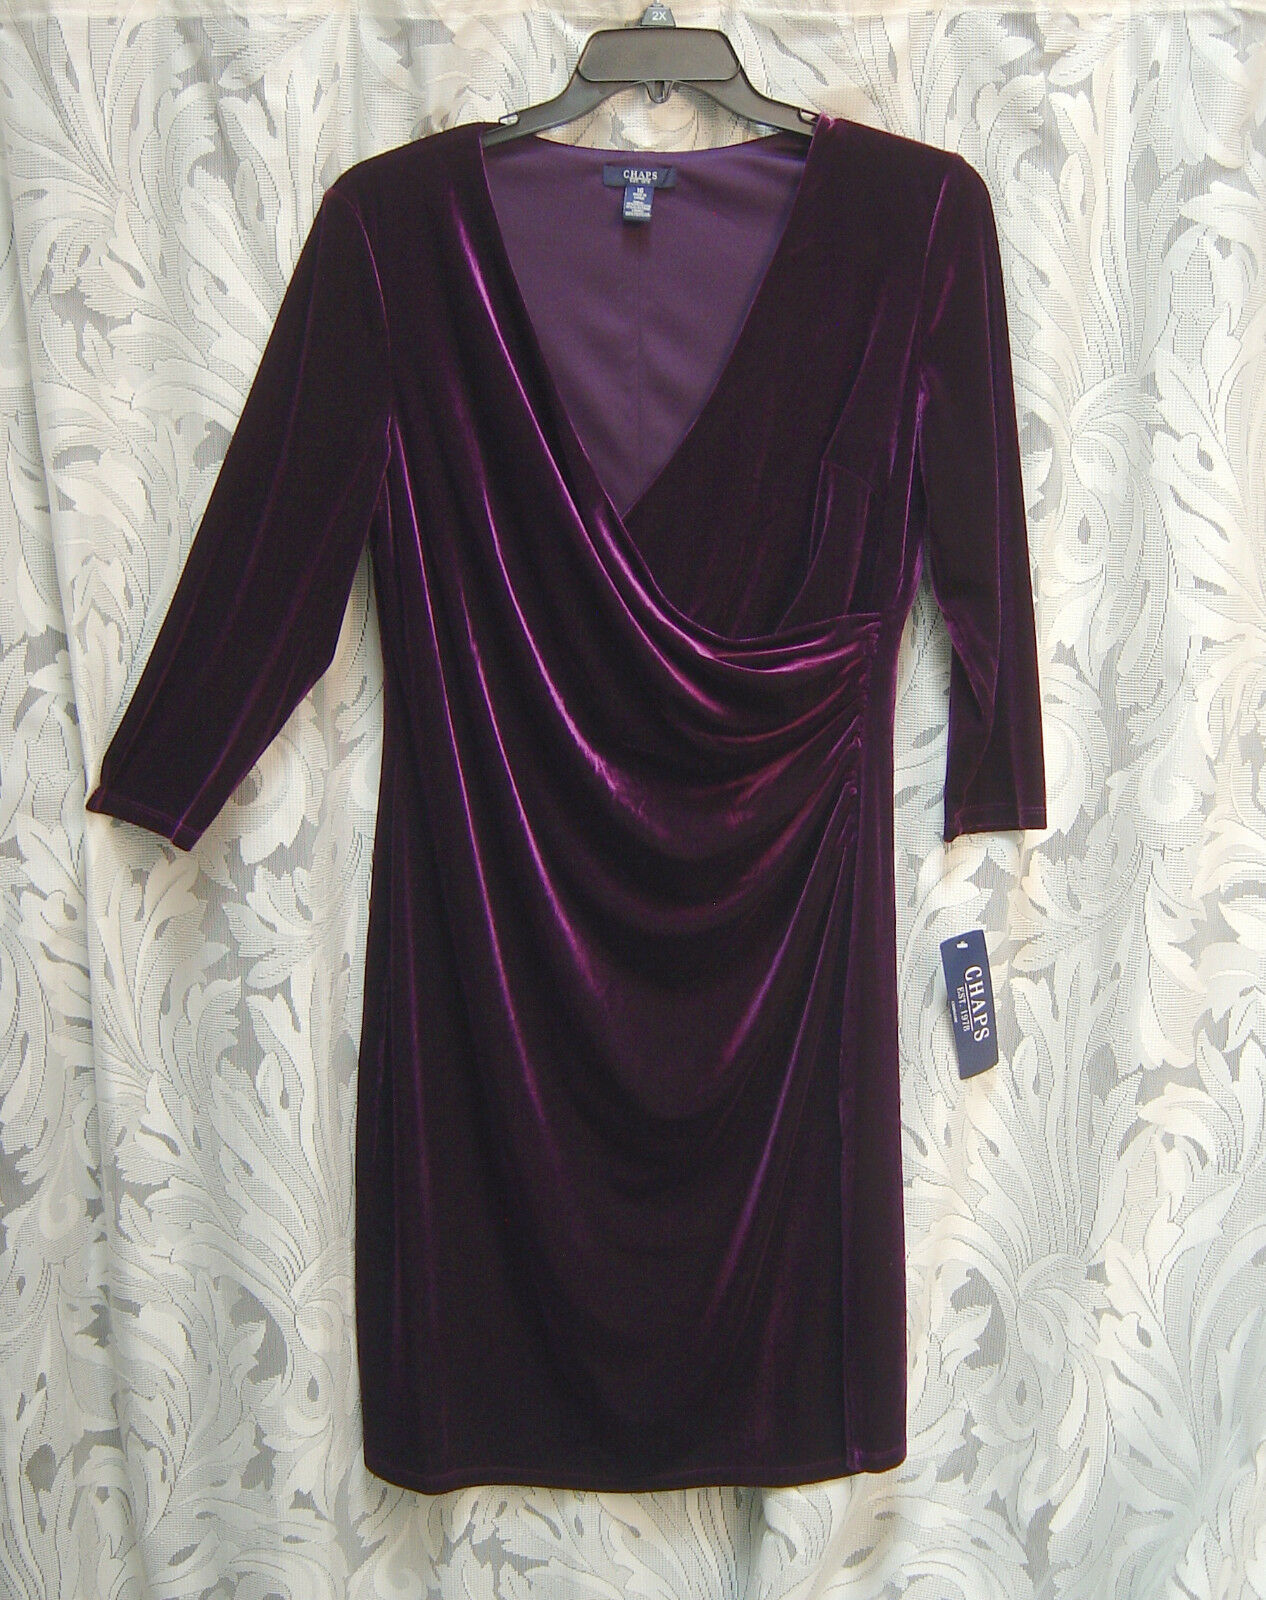 CHAPS RALPH LAUREN PURPLE EGGPLANT FAUX WRAP SOFT VELOUR STRETCH DRESS16XLNWT